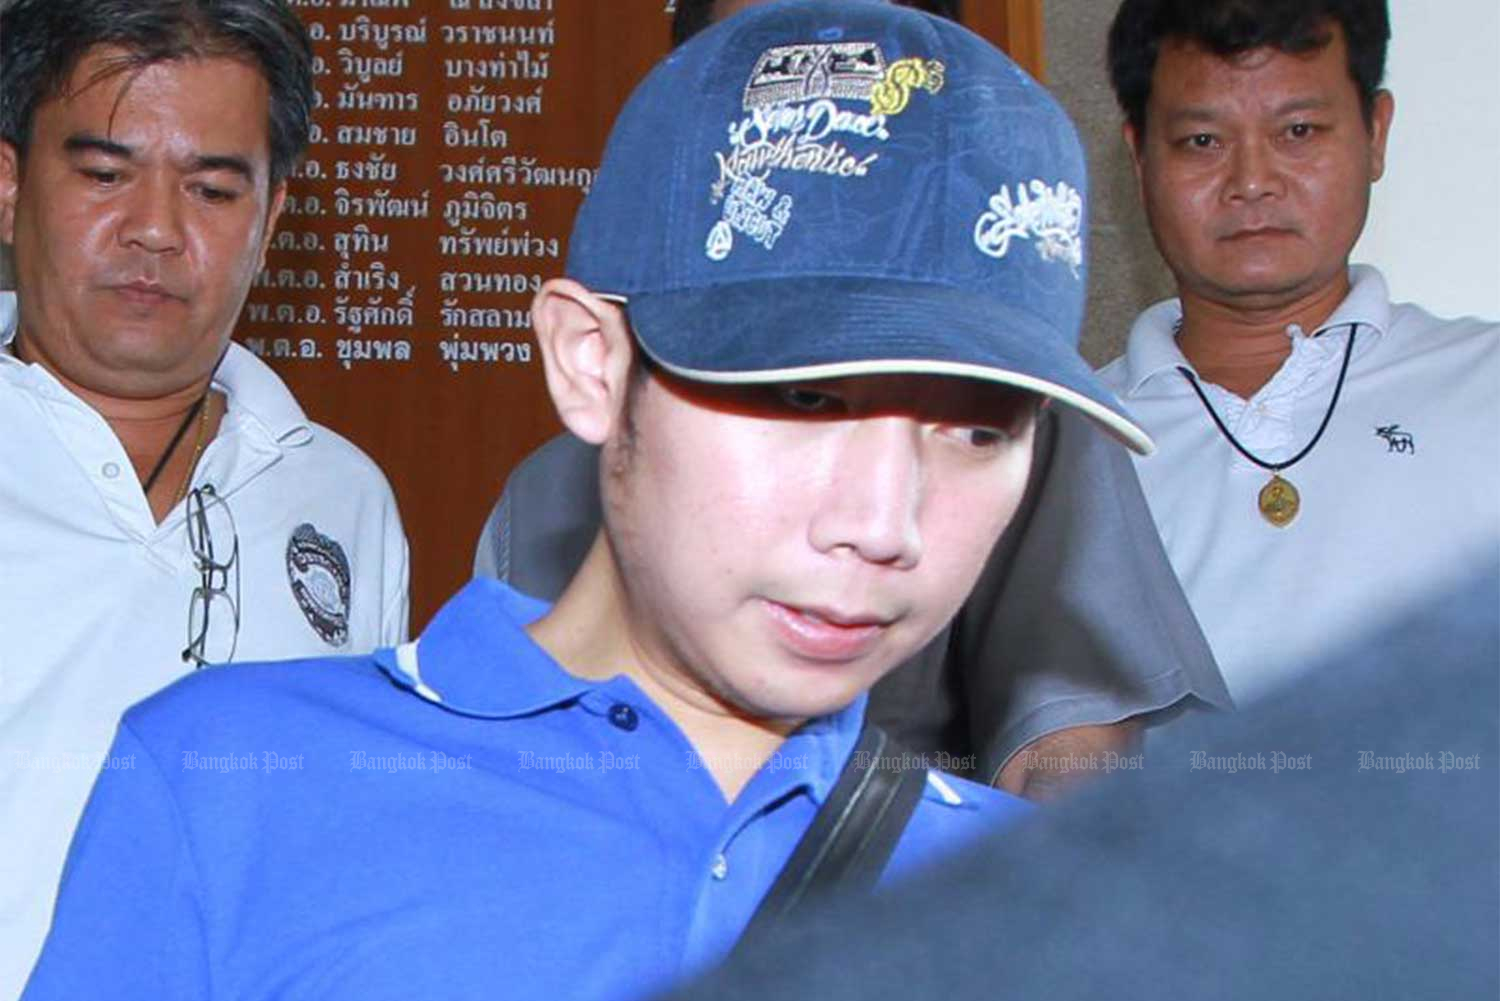 Police escort Vorayuth Yoovidhya in Bangkok after his hit-and-run case on Sept 3, 2012. (Bangkok Post file photo)